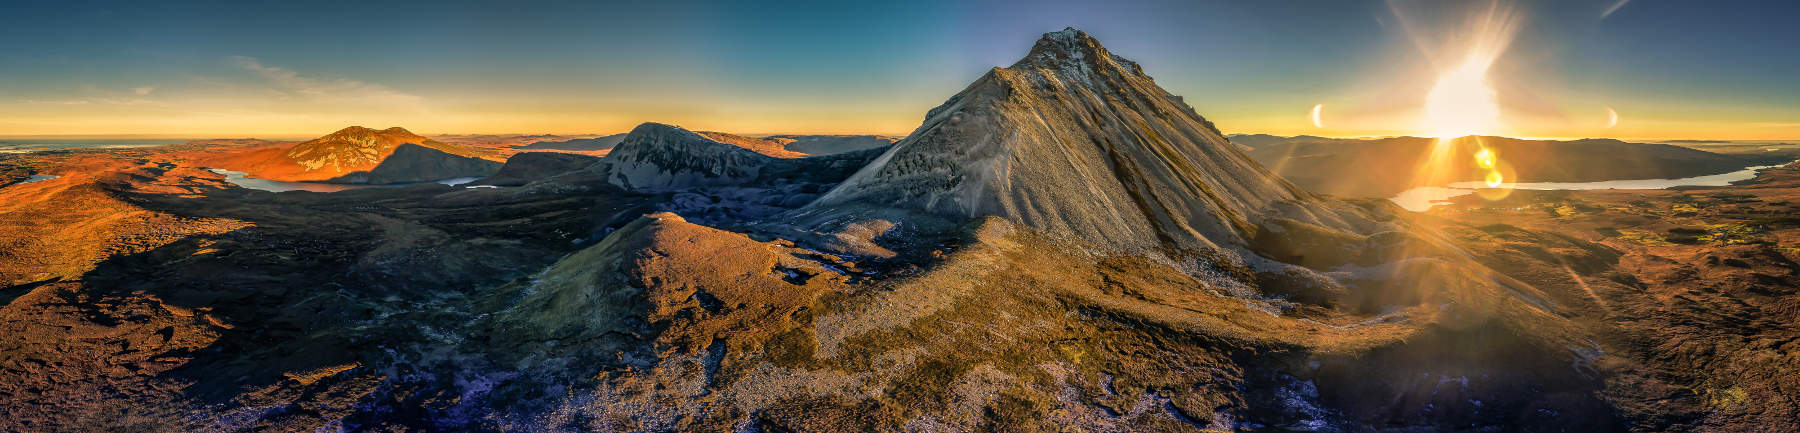 "Errigal Panorama by Adrian Mulligan<div class='row social-icons-business'>   <div class='col-xs-10'>      <div class='social-share-button' data-title='Errigal Panorama' data-img='https://wooky2images.s3.amazonaws.com/uploads/image_file/picture/139/An_Gheimhreadh_ag_an_Eargail.jpg' data-url='www.gaothdobhair.ie/ga/albums' data-desc='descrption' data-via='http://www.gaothdobhair.ie'> <a rel=""nofollow "" data-site=""twitter"" class=""ssb-icon ssb-twitter"" onclick=""return SocialShareButton.share(this);"" title=""share"" href=""#""></a> <a rel=""nofollow "" data-site=""facebook"" class=""ssb-icon ssb-facebook"" onclick=""return SocialShareButton.share(this);"" title=""share"" href=""#""></a> <a rel=""nofollow "" data-site=""google_plus"" class=""ssb-icon ssb-google_plus"" onclick=""return SocialShareButton.share(this);"" title=""share"" href=""#""></a> <a rel=""nofollow "" data-site=""pinterest"" class=""ssb-icon ssb-pinterest"" onclick=""return SocialShareButton.share(this);"" title=""share"" href=""#""></a> <a rel=""nofollow "" data-site=""linkedin"" class=""ssb-icon ssb-linkedin"" onclick=""return SocialShareButton.share(this);"" title=""share"" href=""#""></a> </div>    </div> </div>"